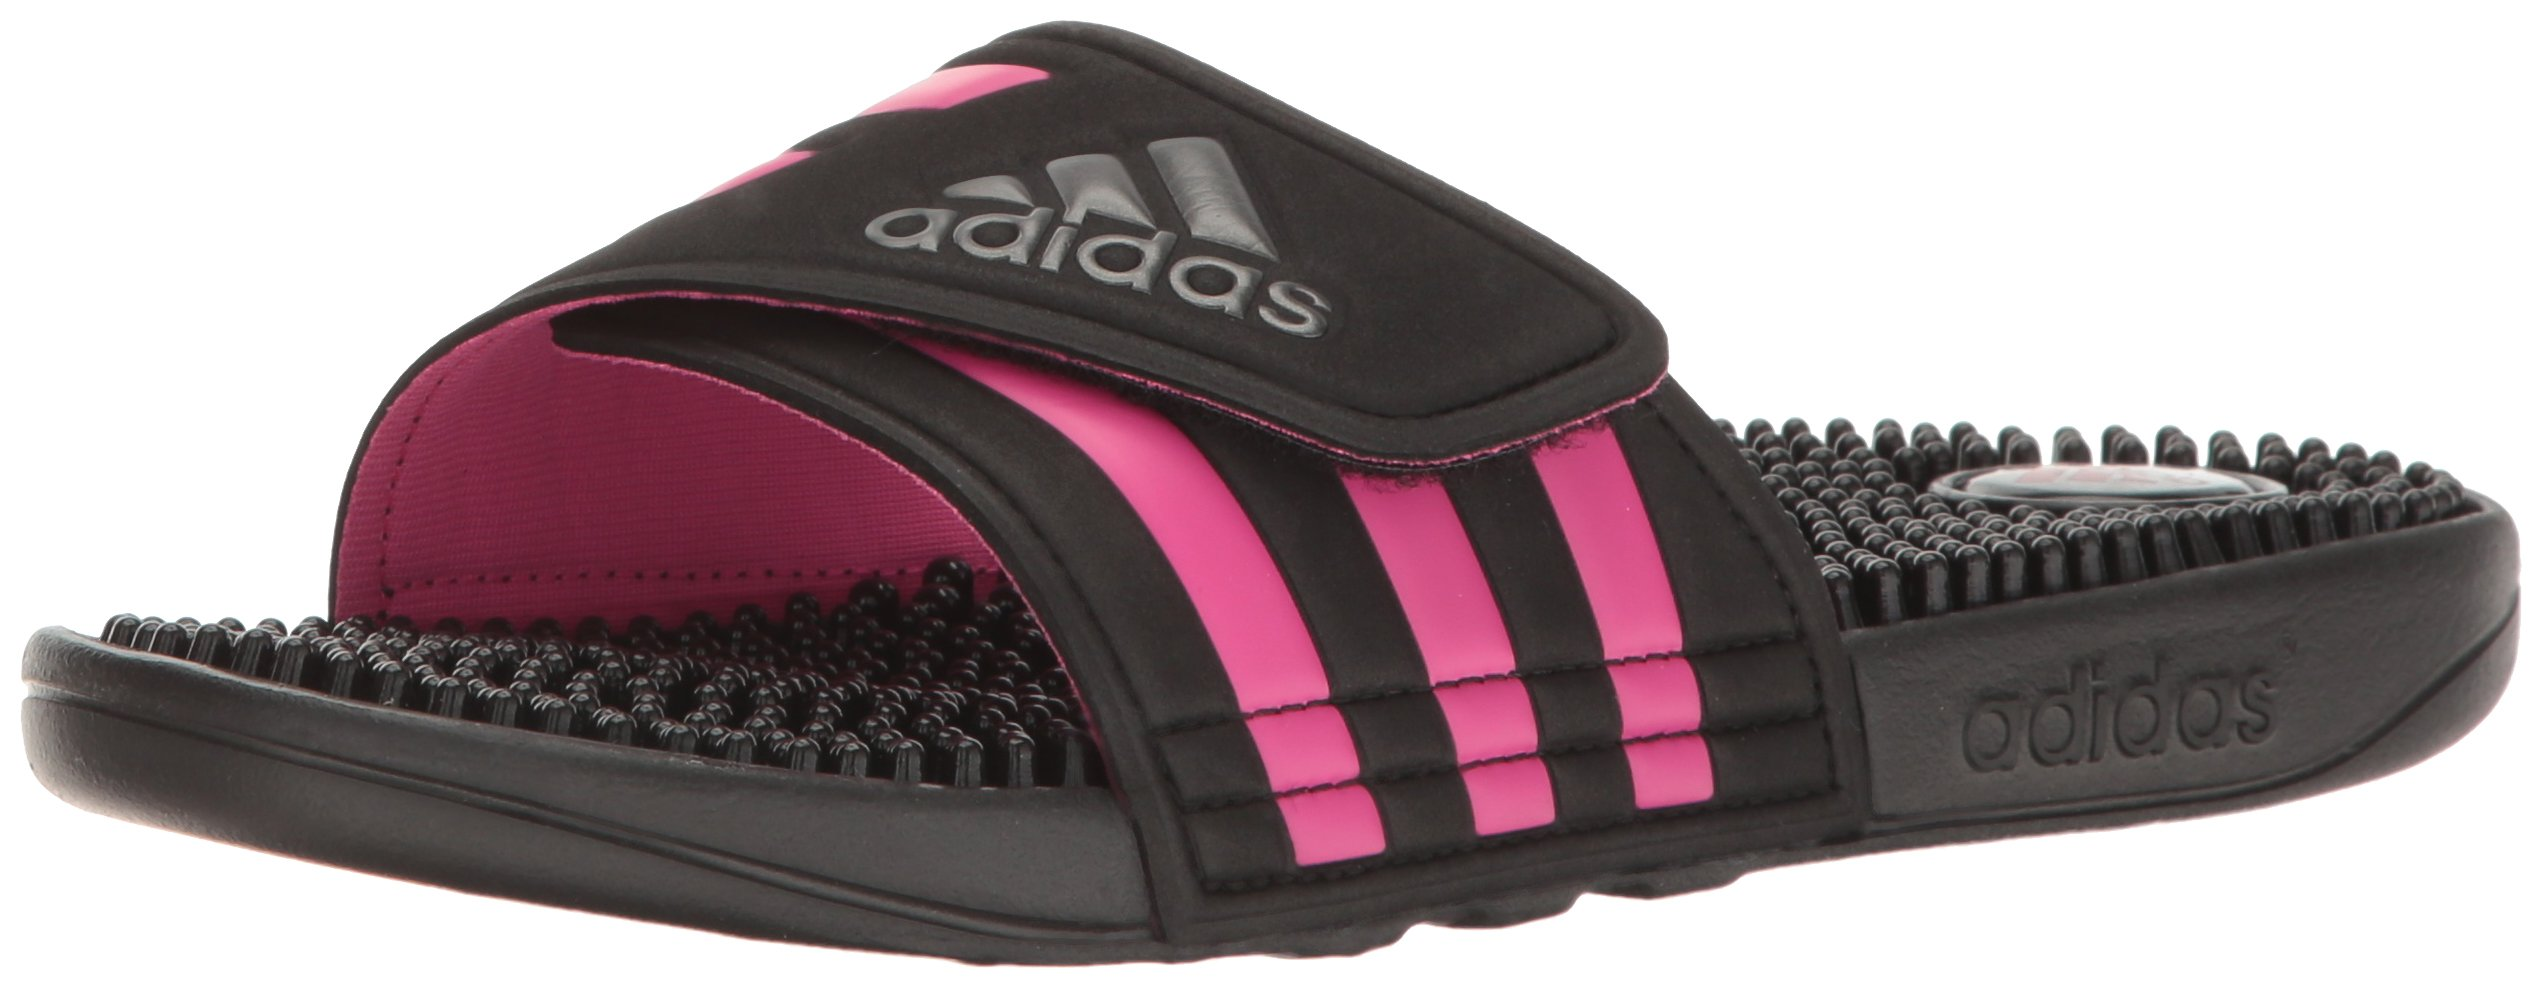 official photos 38081 0c3b6 Get Quotations · adidas Originals Women s Adissage W Slide Sandal